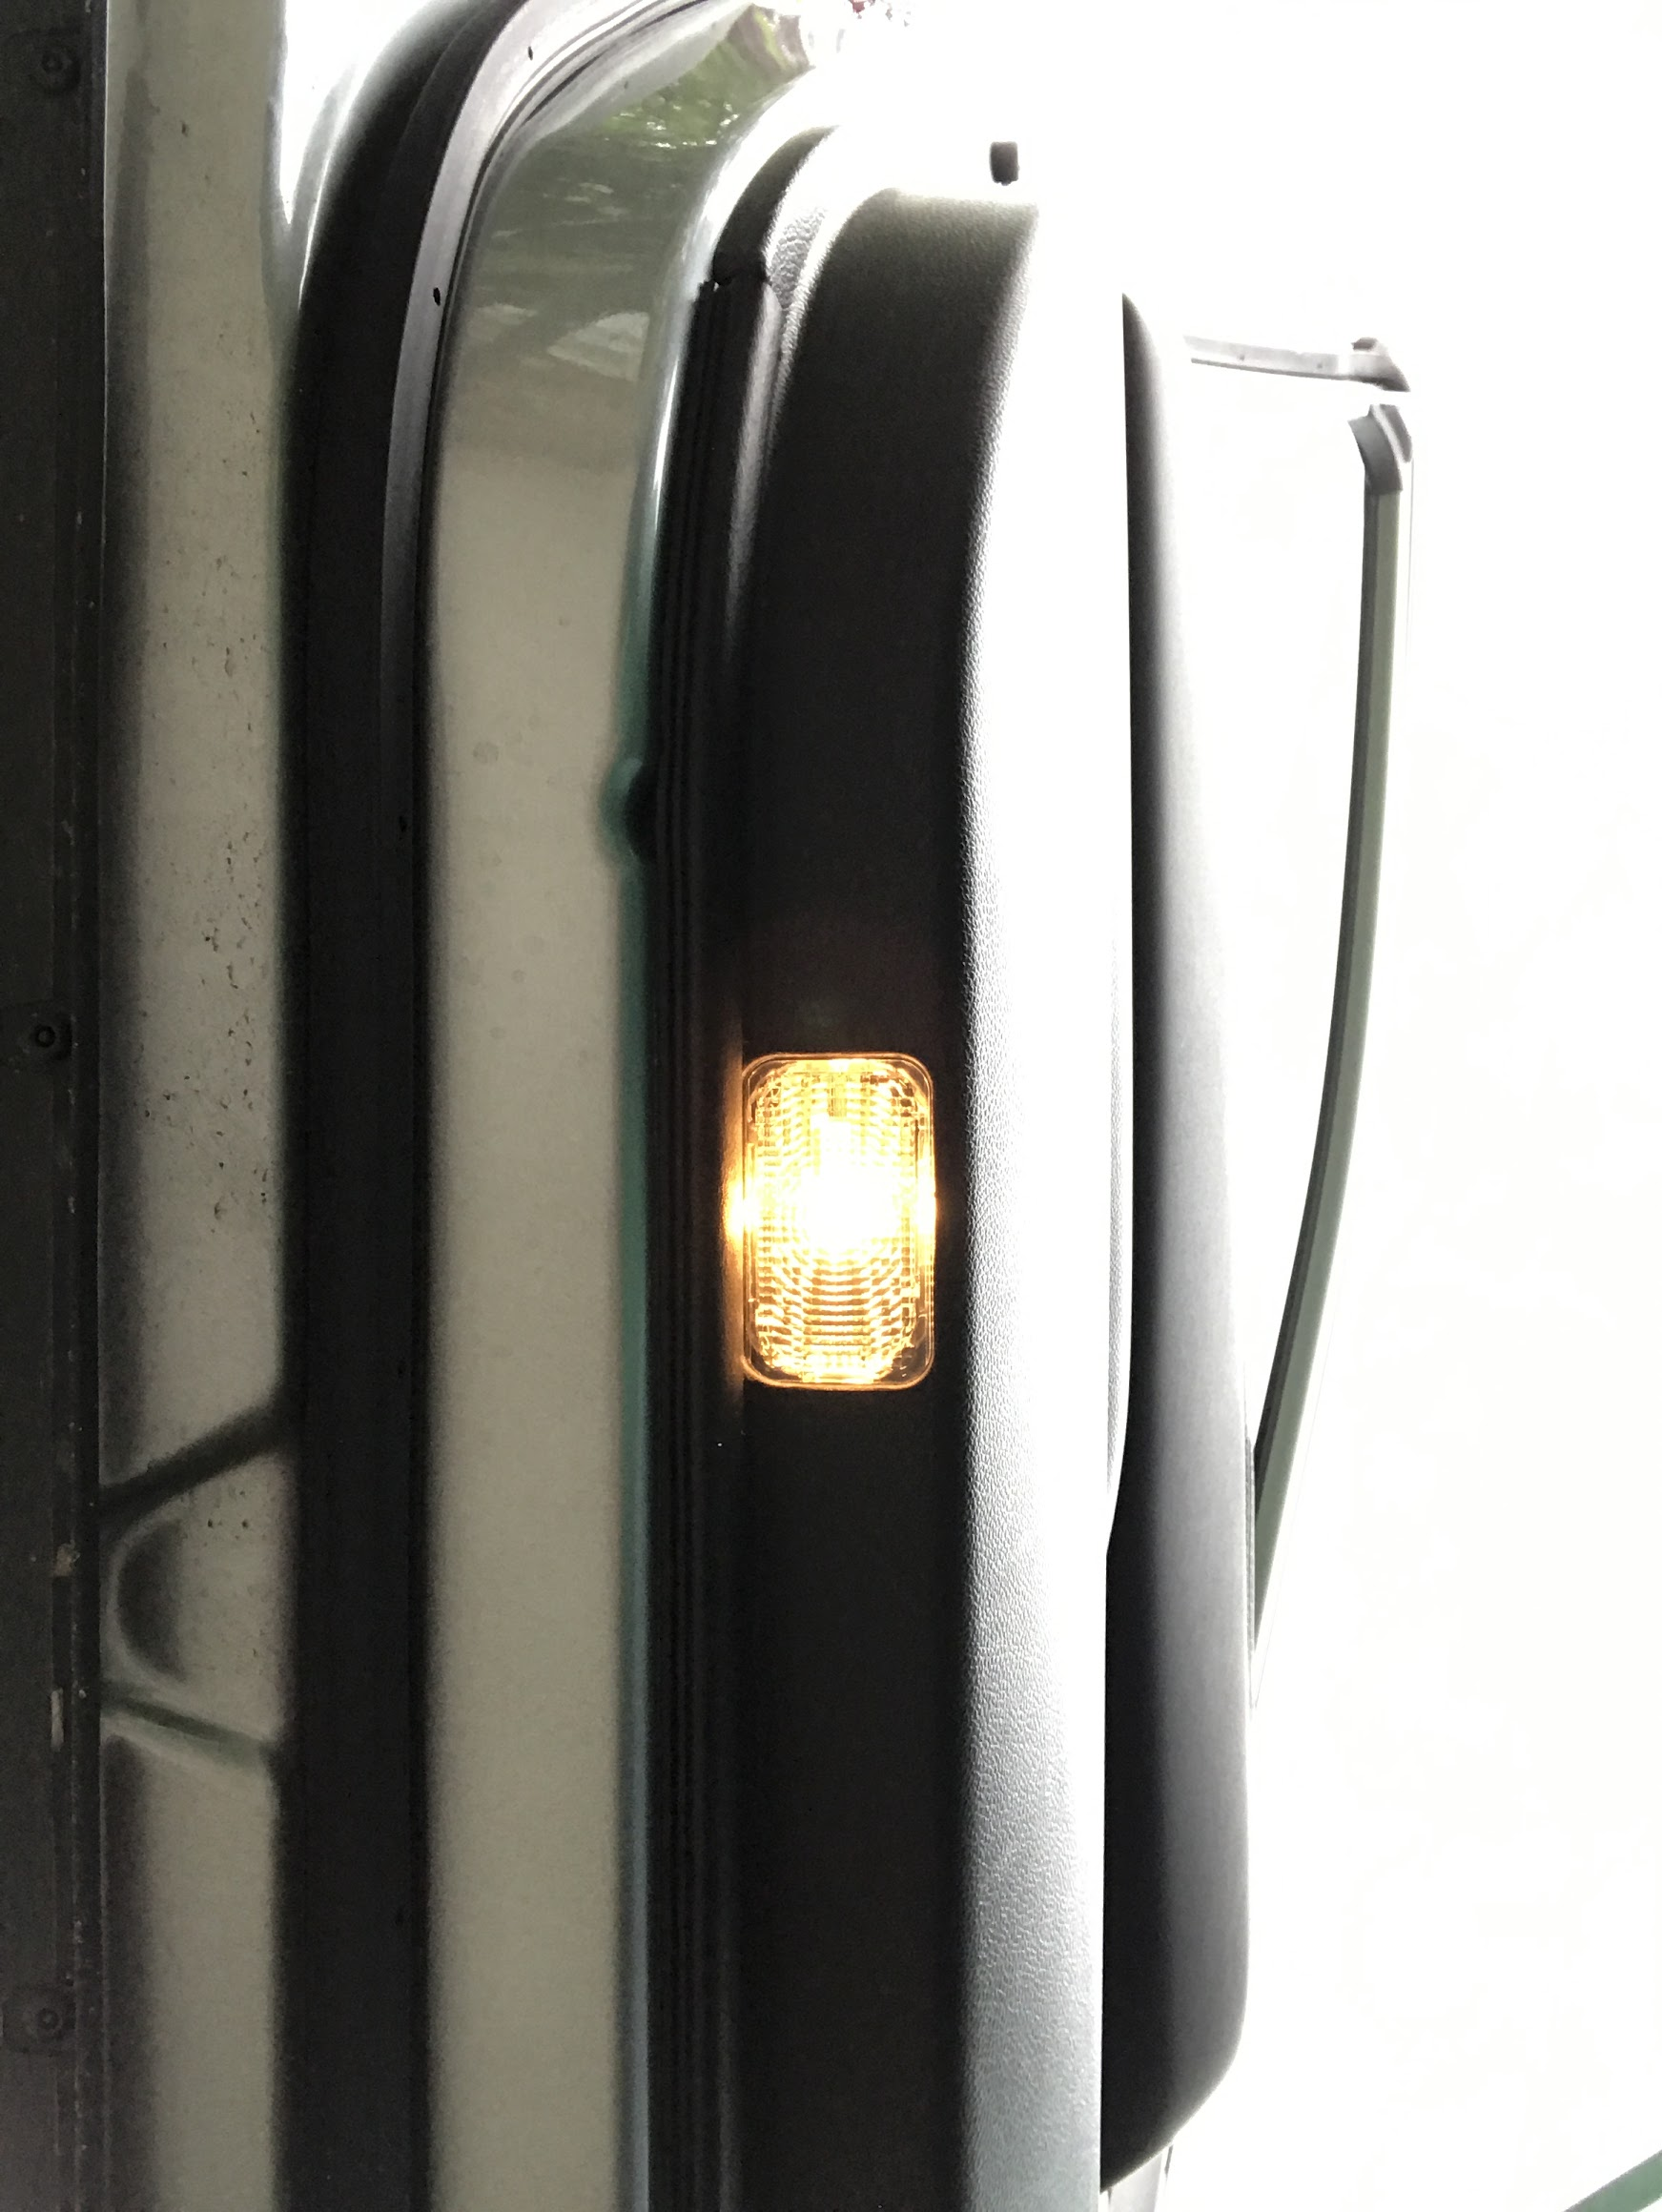 I think I'm gong to miss my puddle lights - Subaru Outback - Subaru Outback Forums